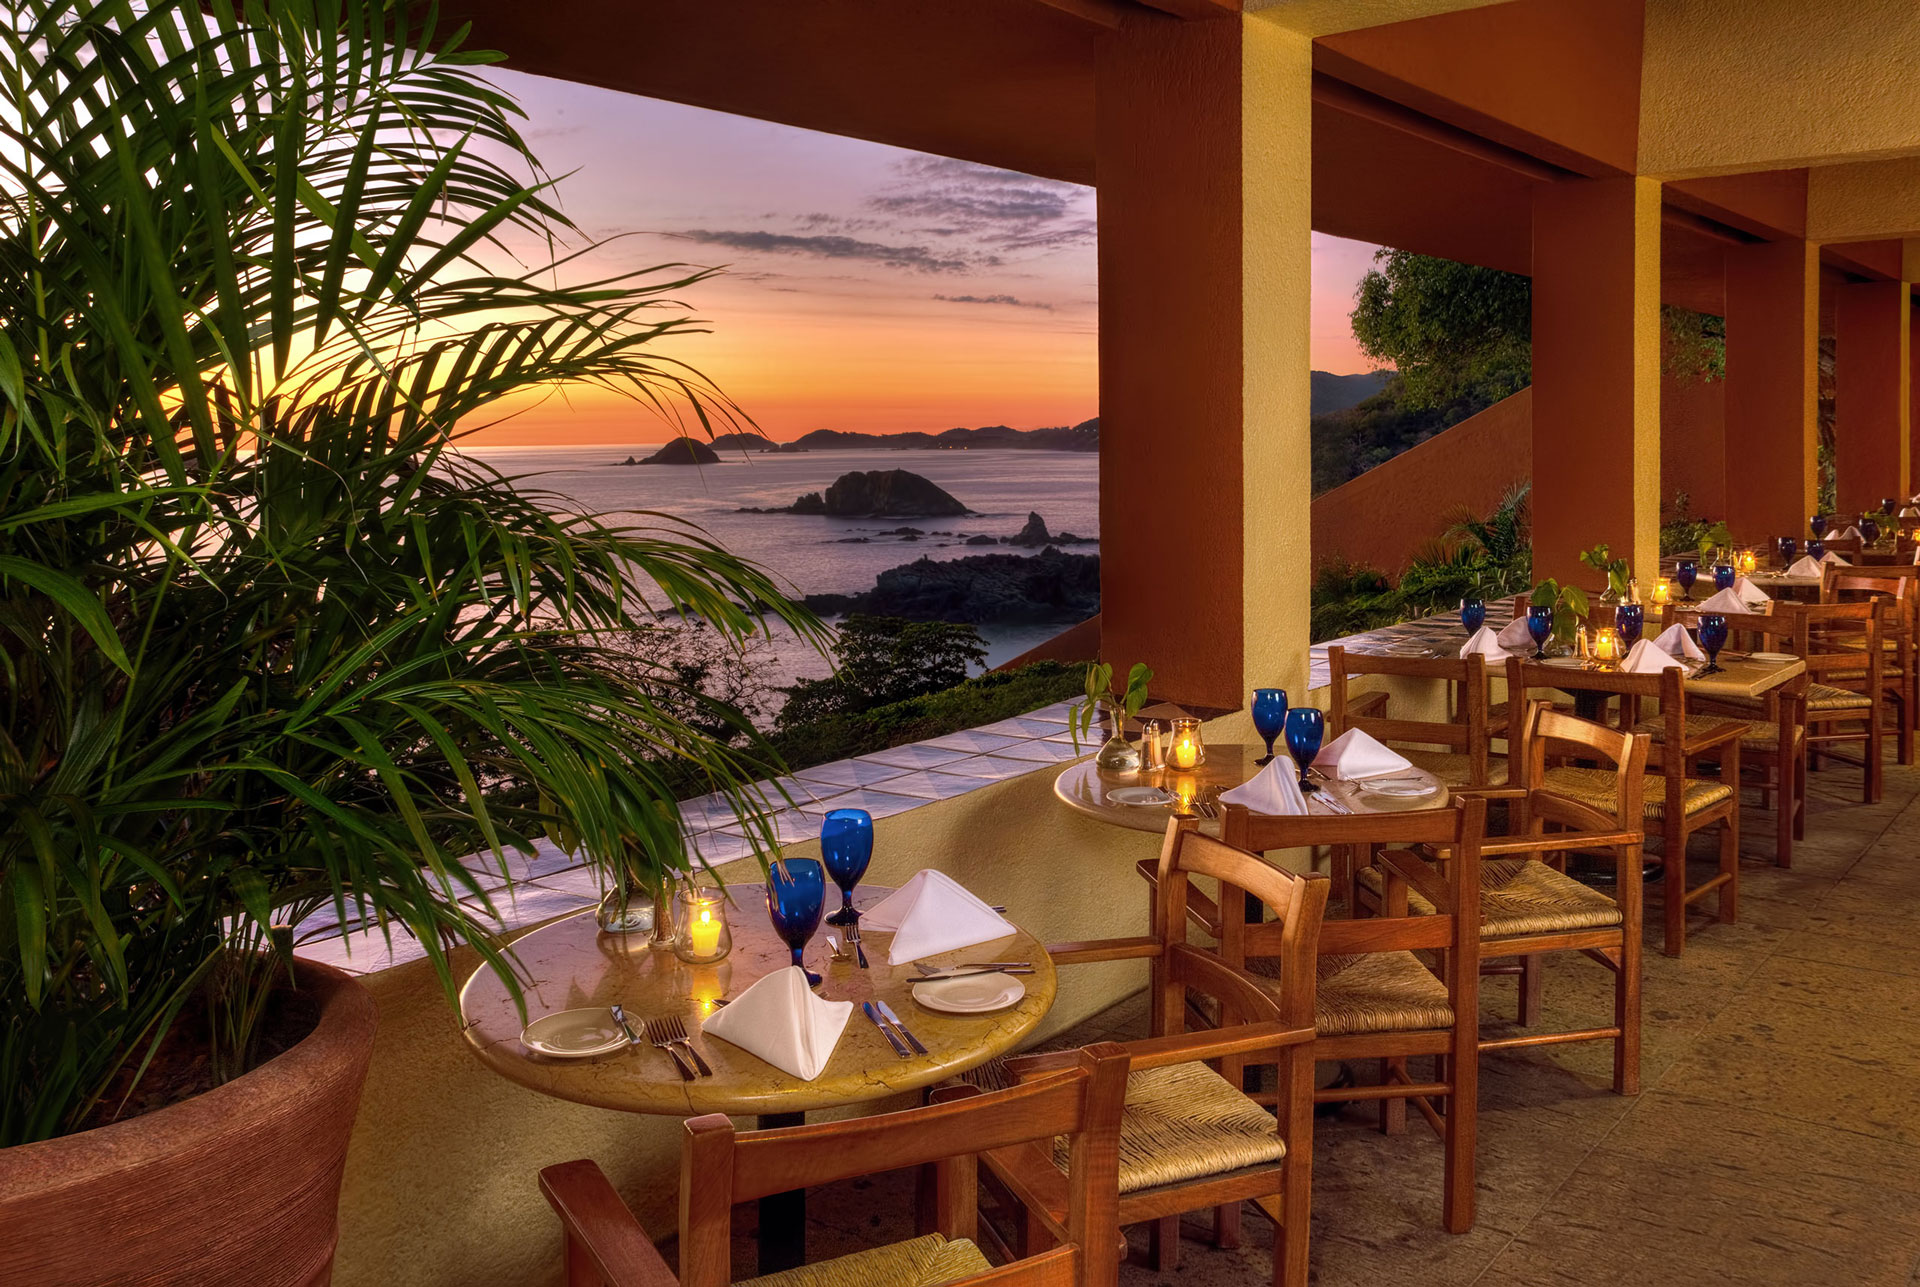 Bar and Restaurant from Hotel Las Brisas Ixtapa